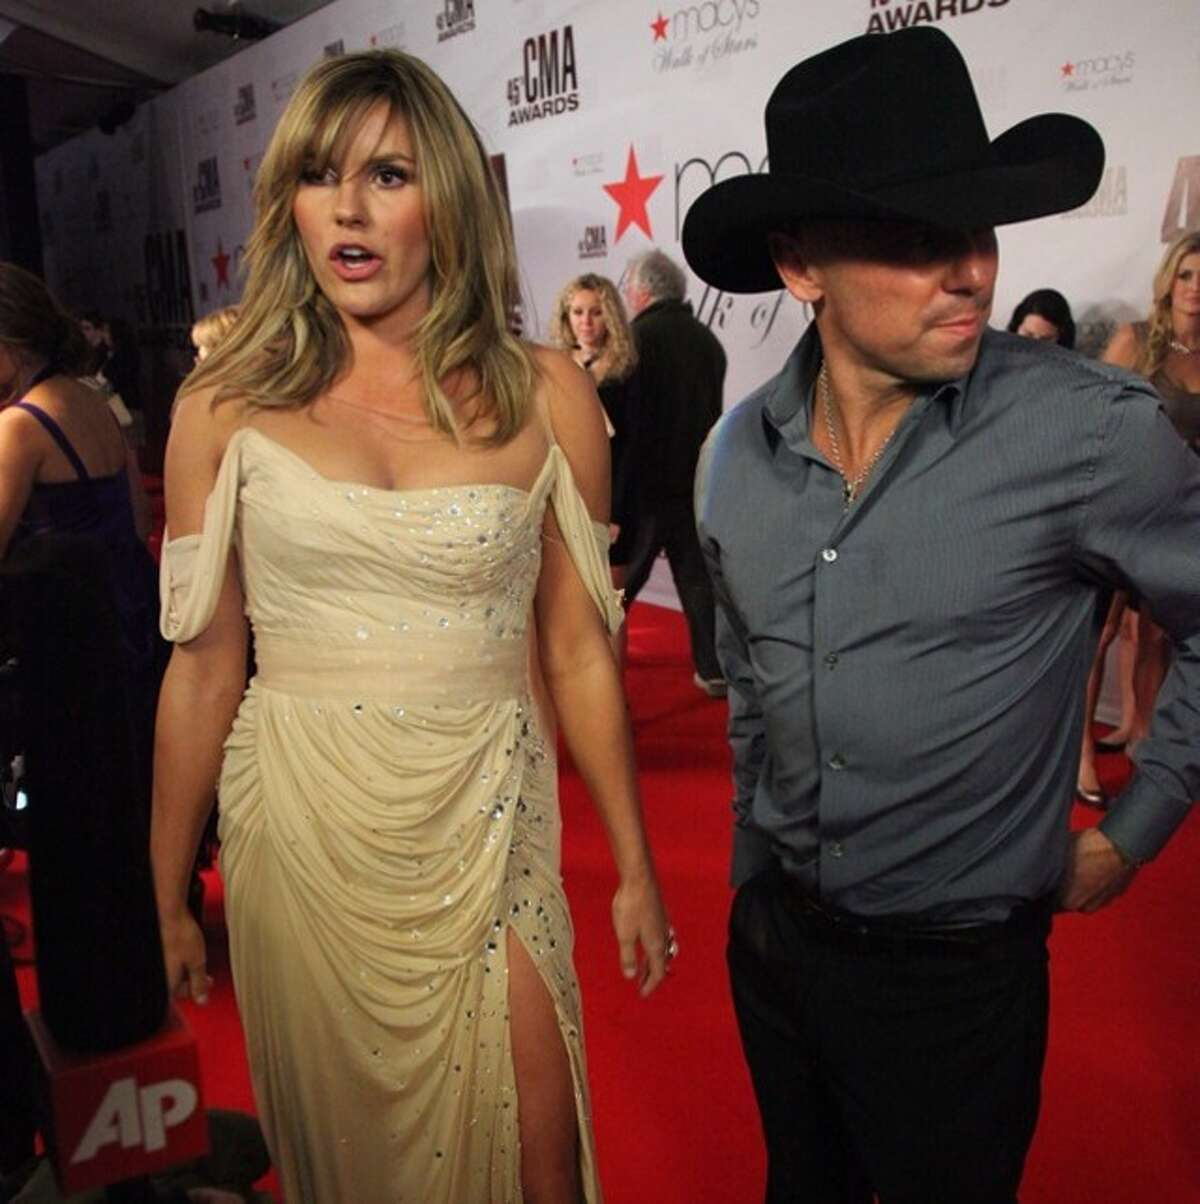 WORST: Grace Potter and Kenny Chesney